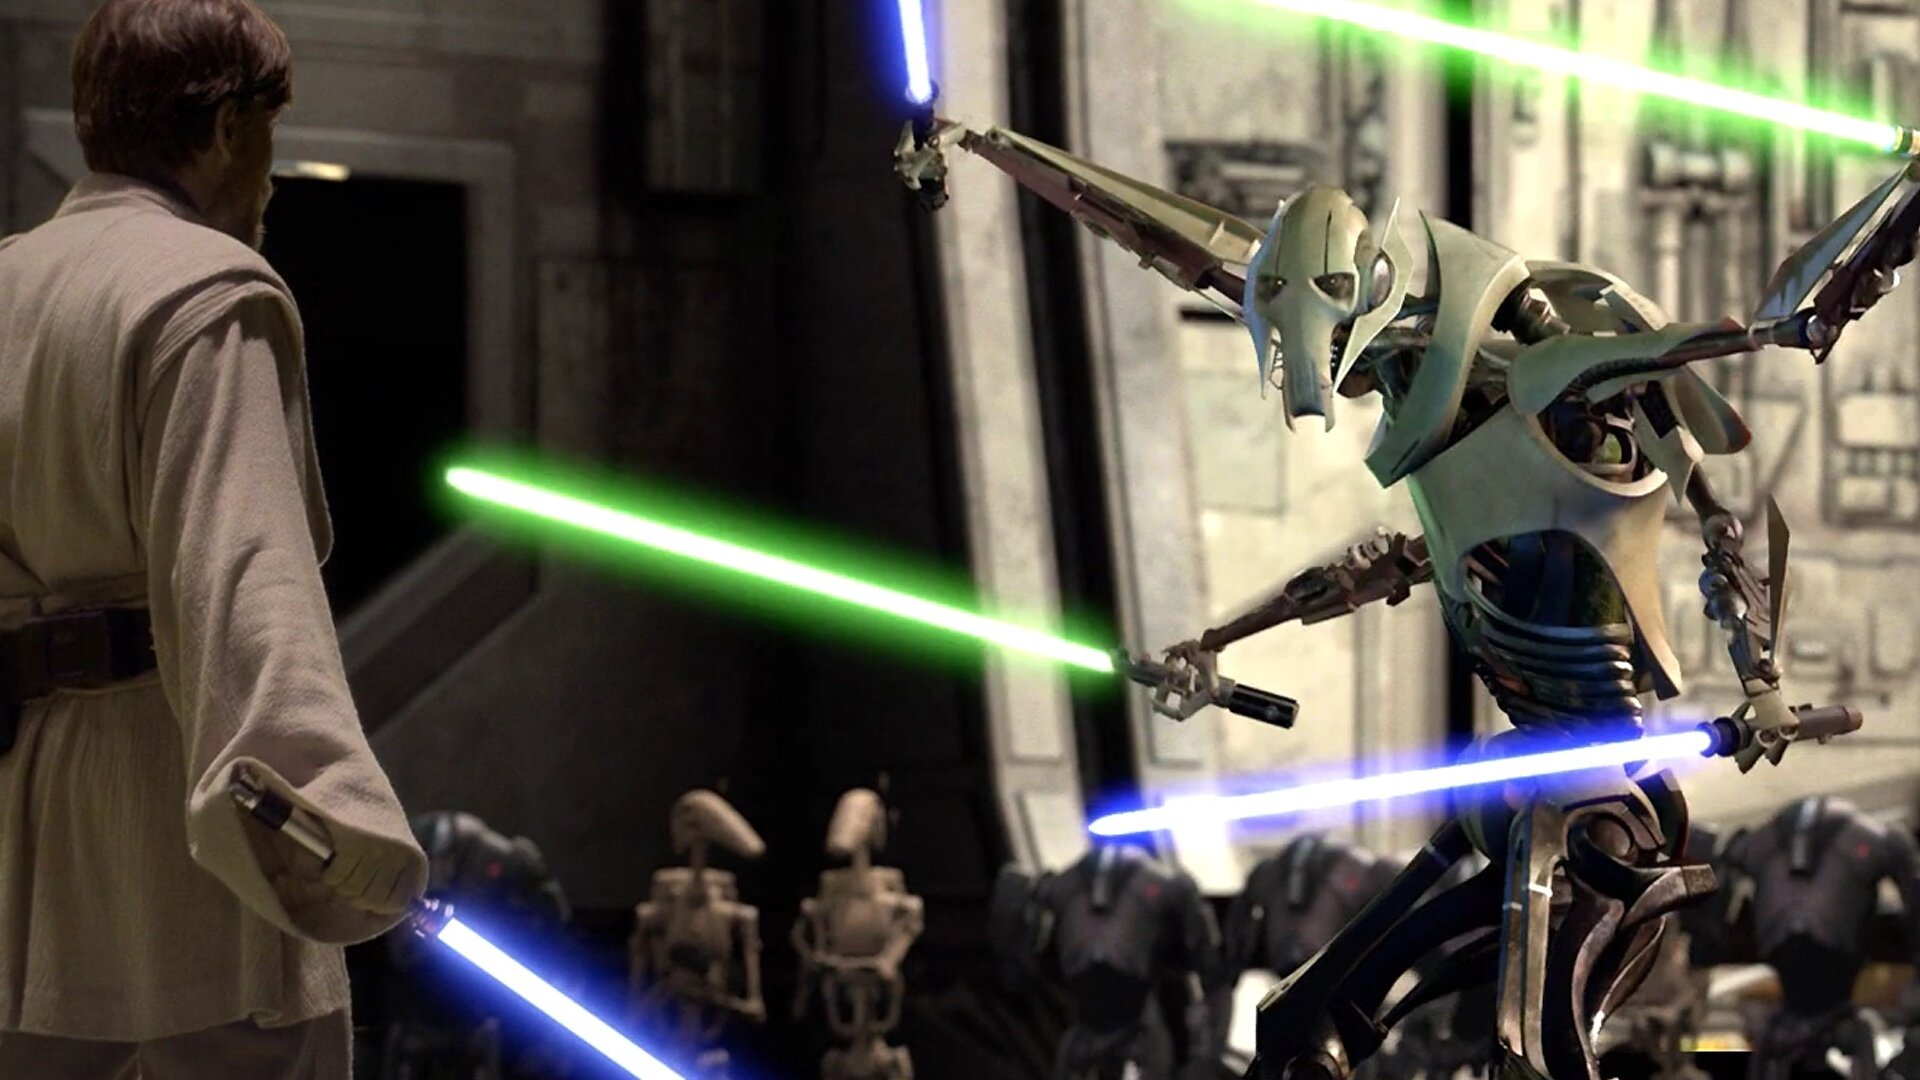 Star Wars Vfx Artist Points Out A Cool Detail During General Grievous Scene In Revenge Of The Sith Geektyrant